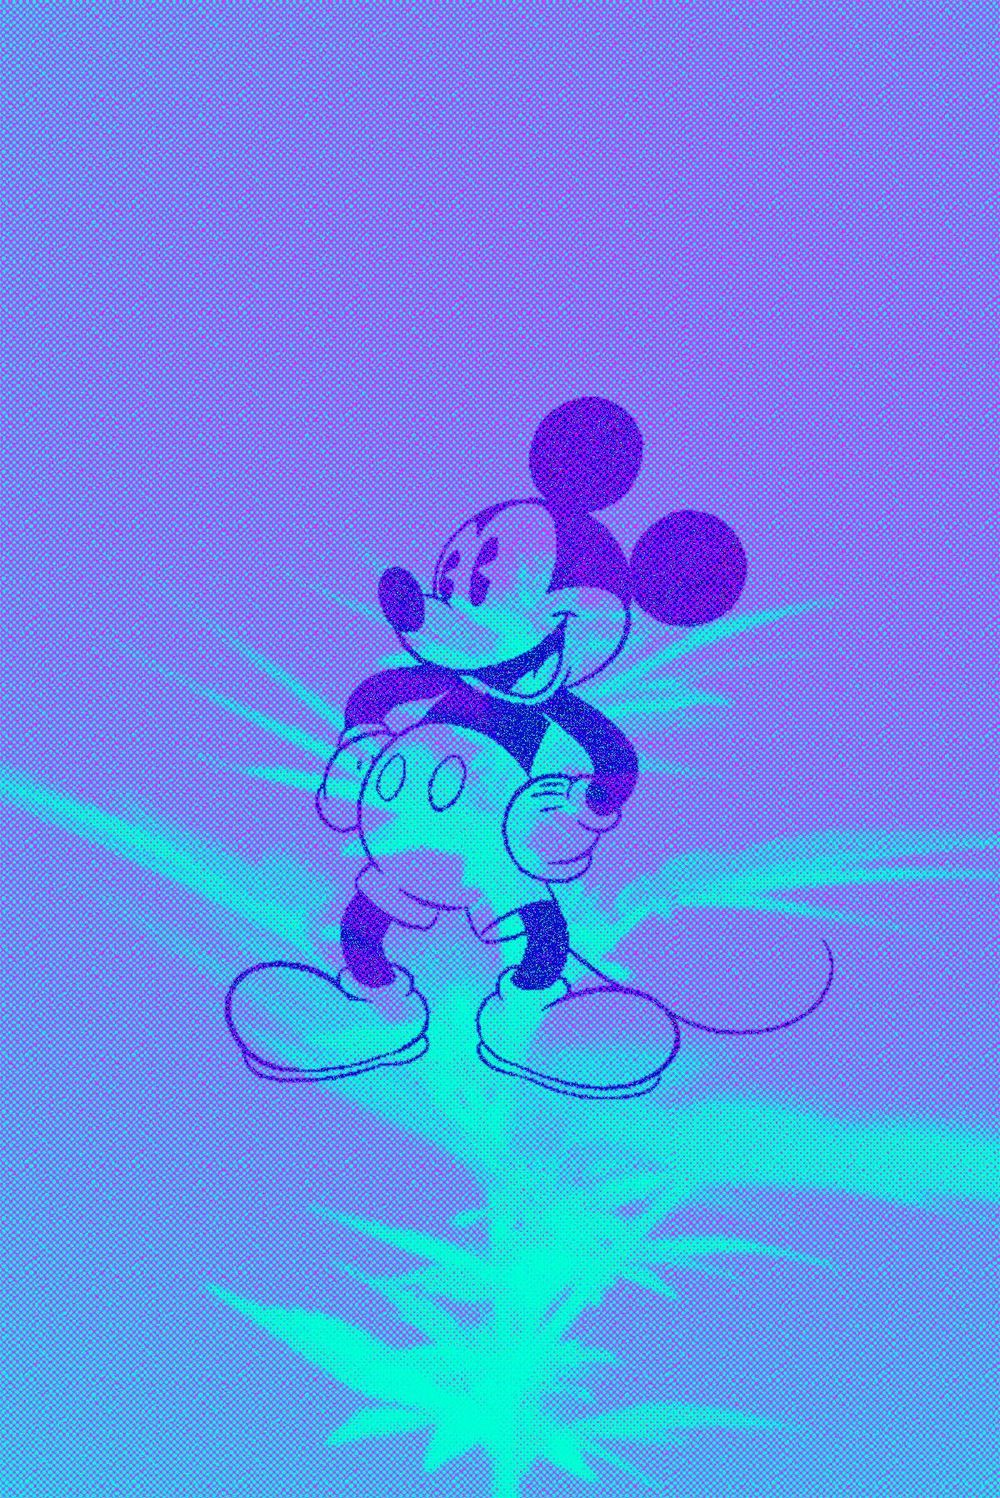 Mickey Mouse - image 1 - student project